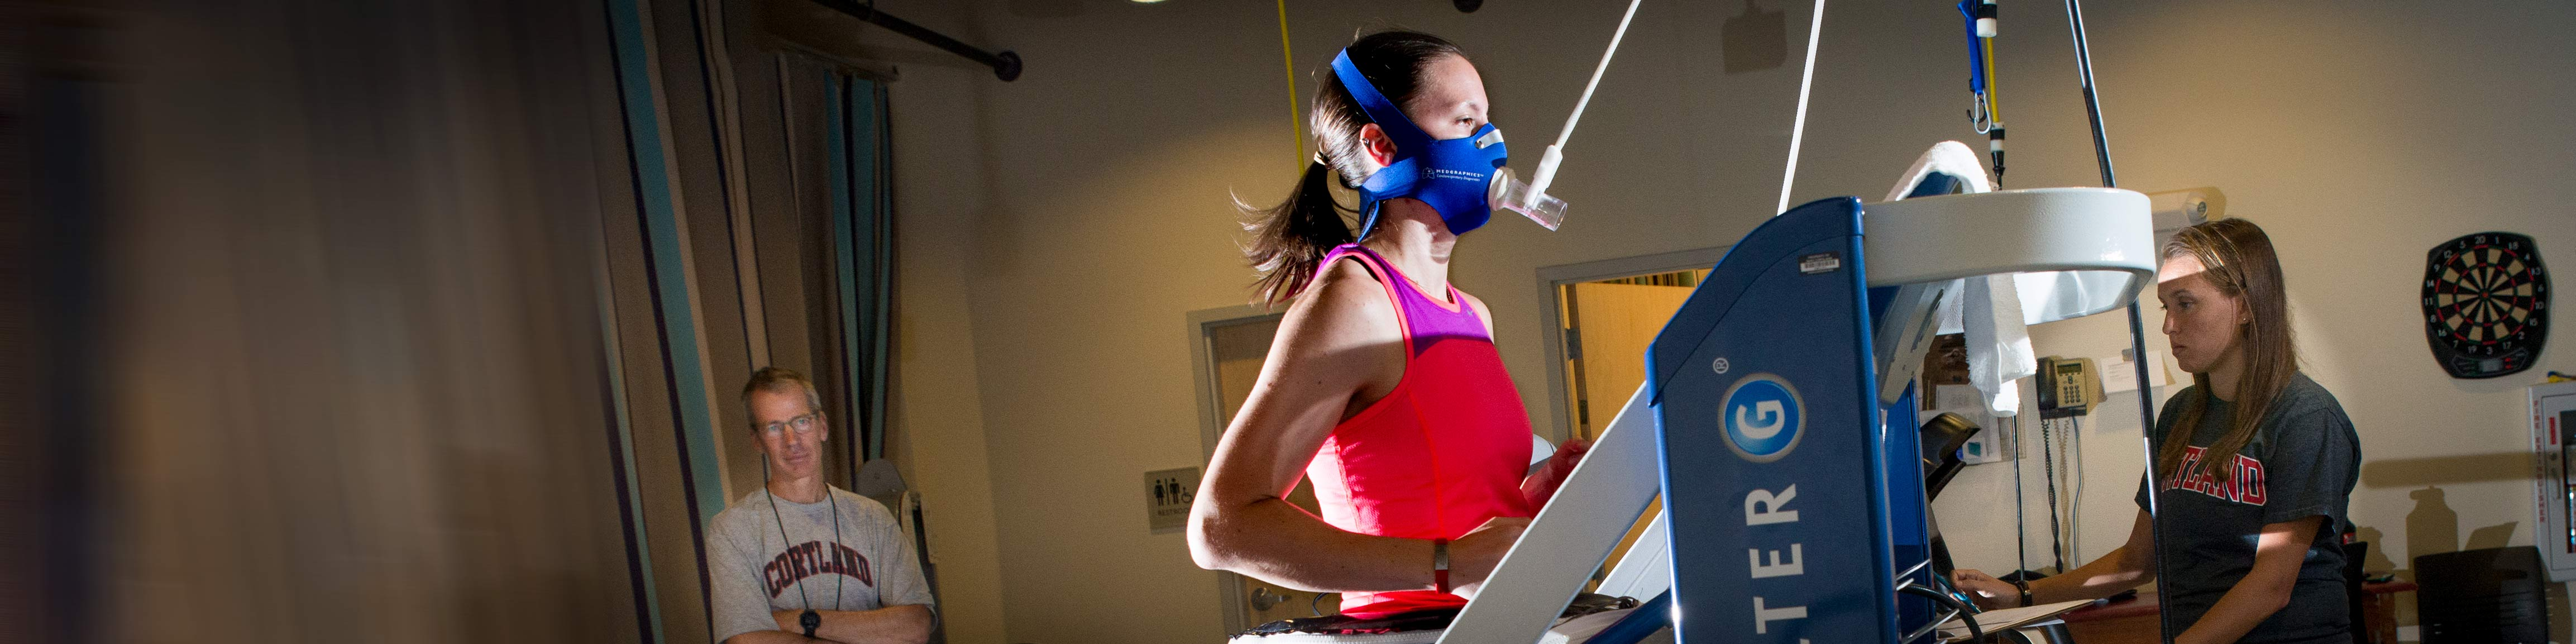 Aspiring physical therapist Allison Schumann conducting research in exercise science lab